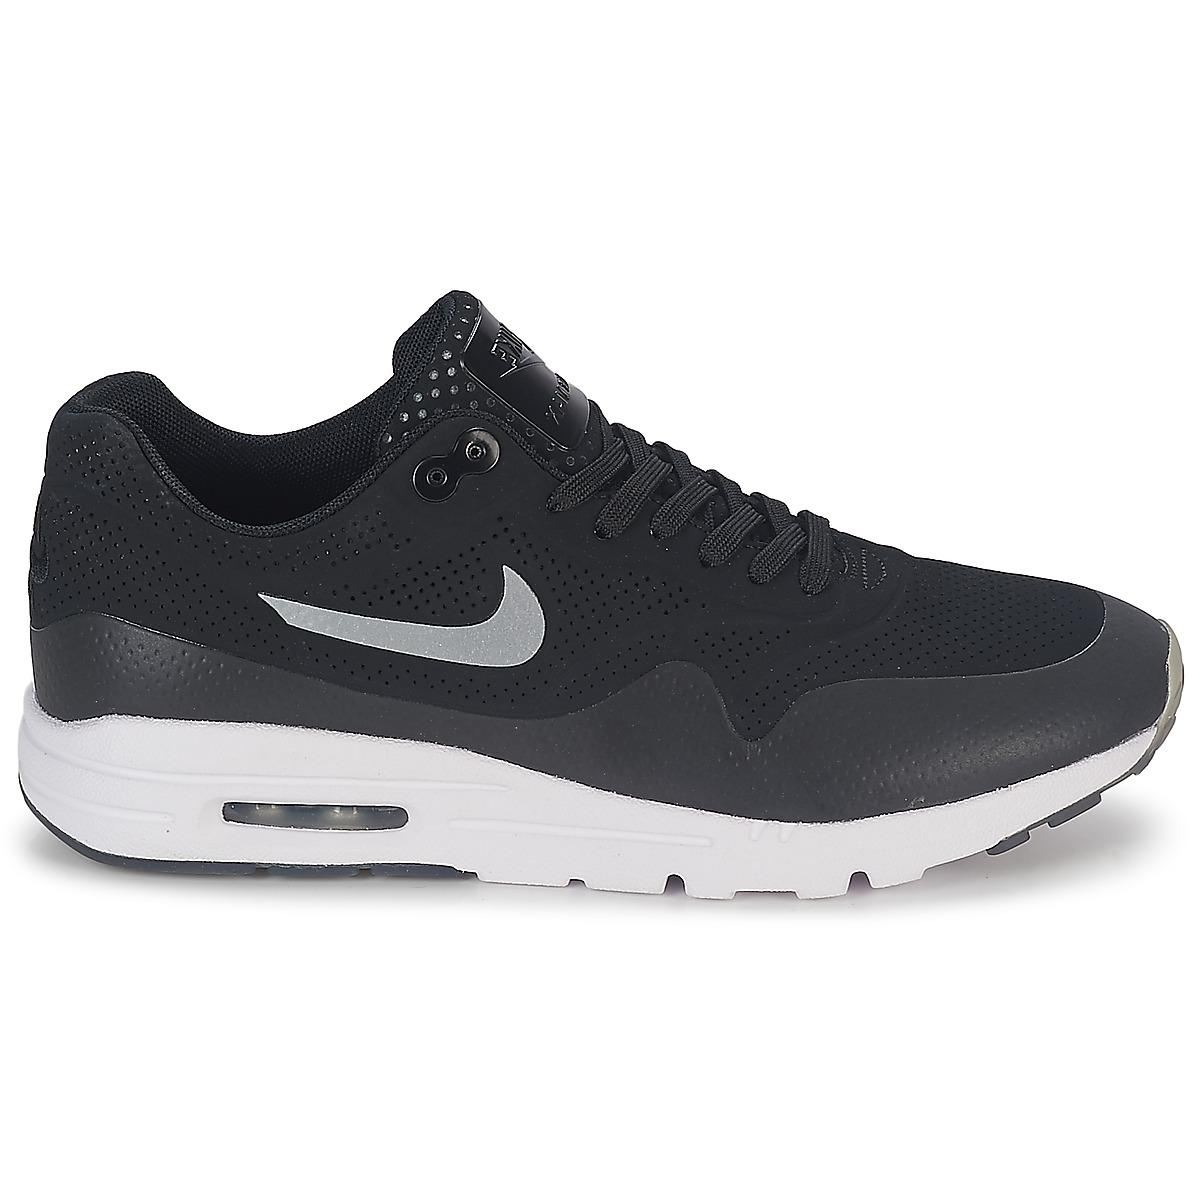 3dbd2d0e37 Nike - Black Air Max 1 Ultra Moire Shoes (trainers) - Lyst. View fullscreen